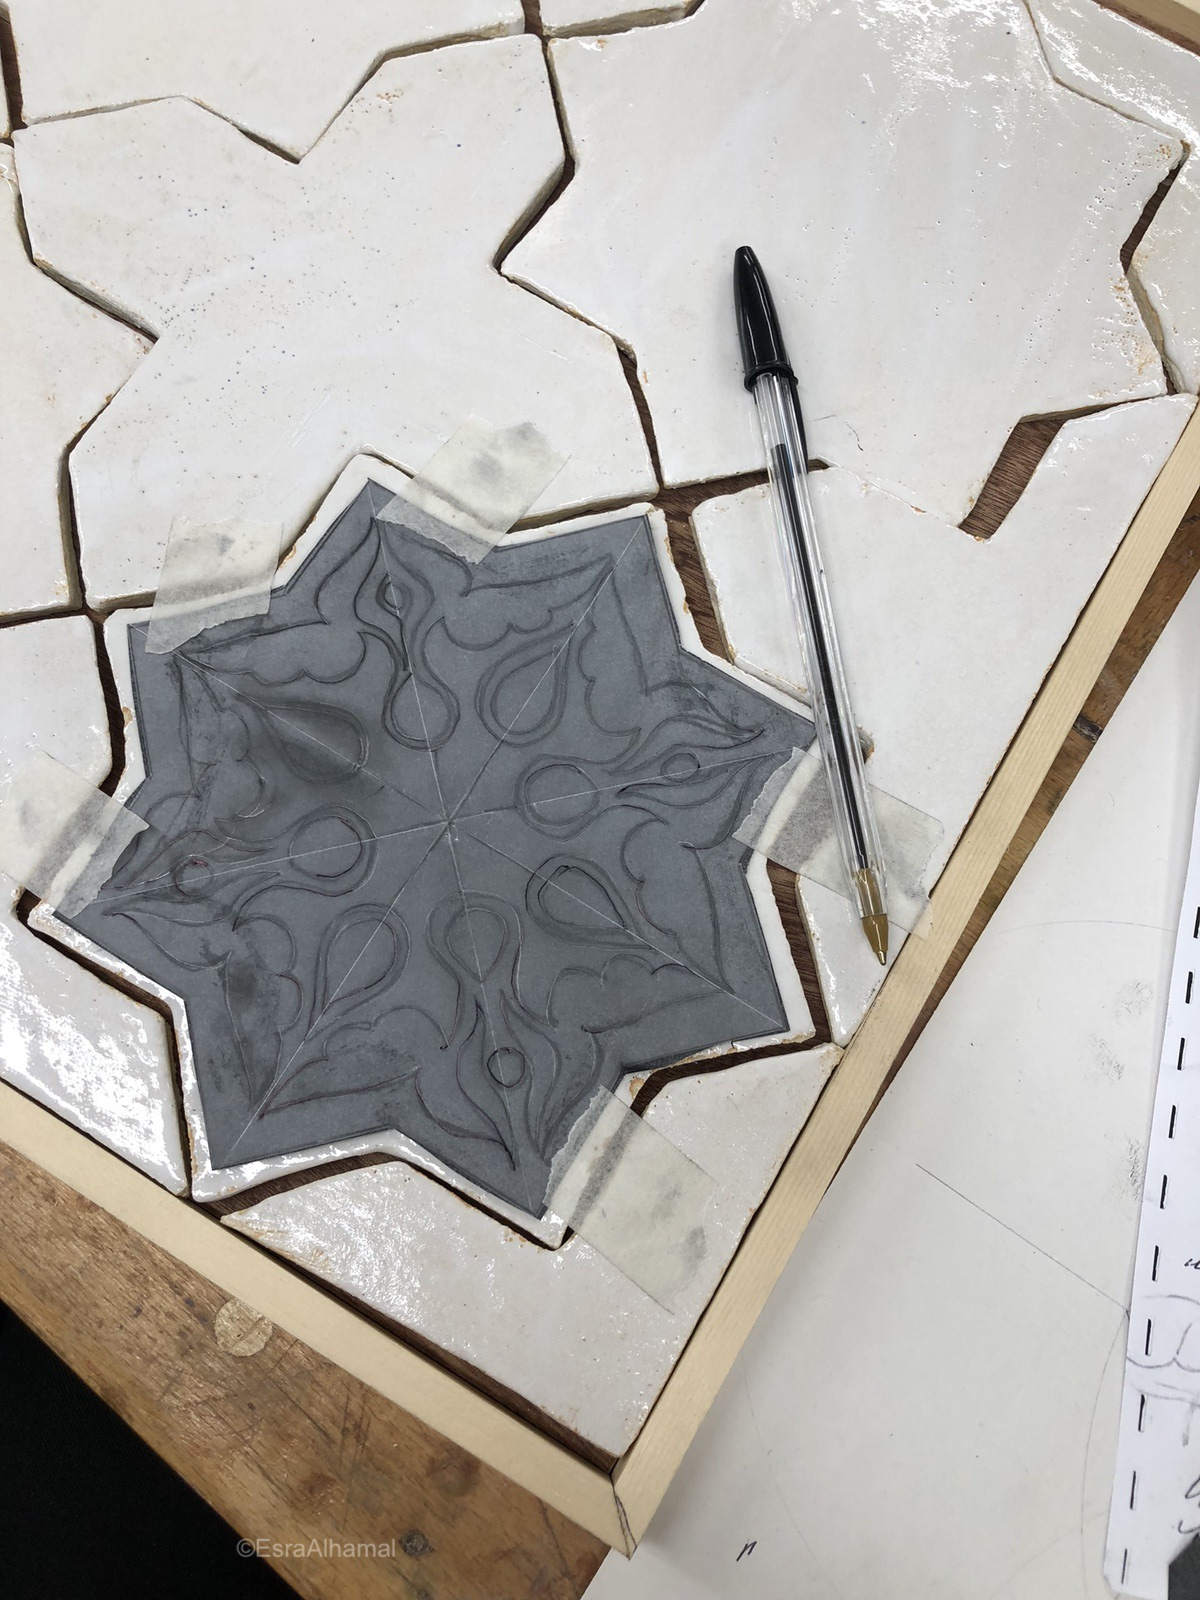 Transferring Design from paper to tile